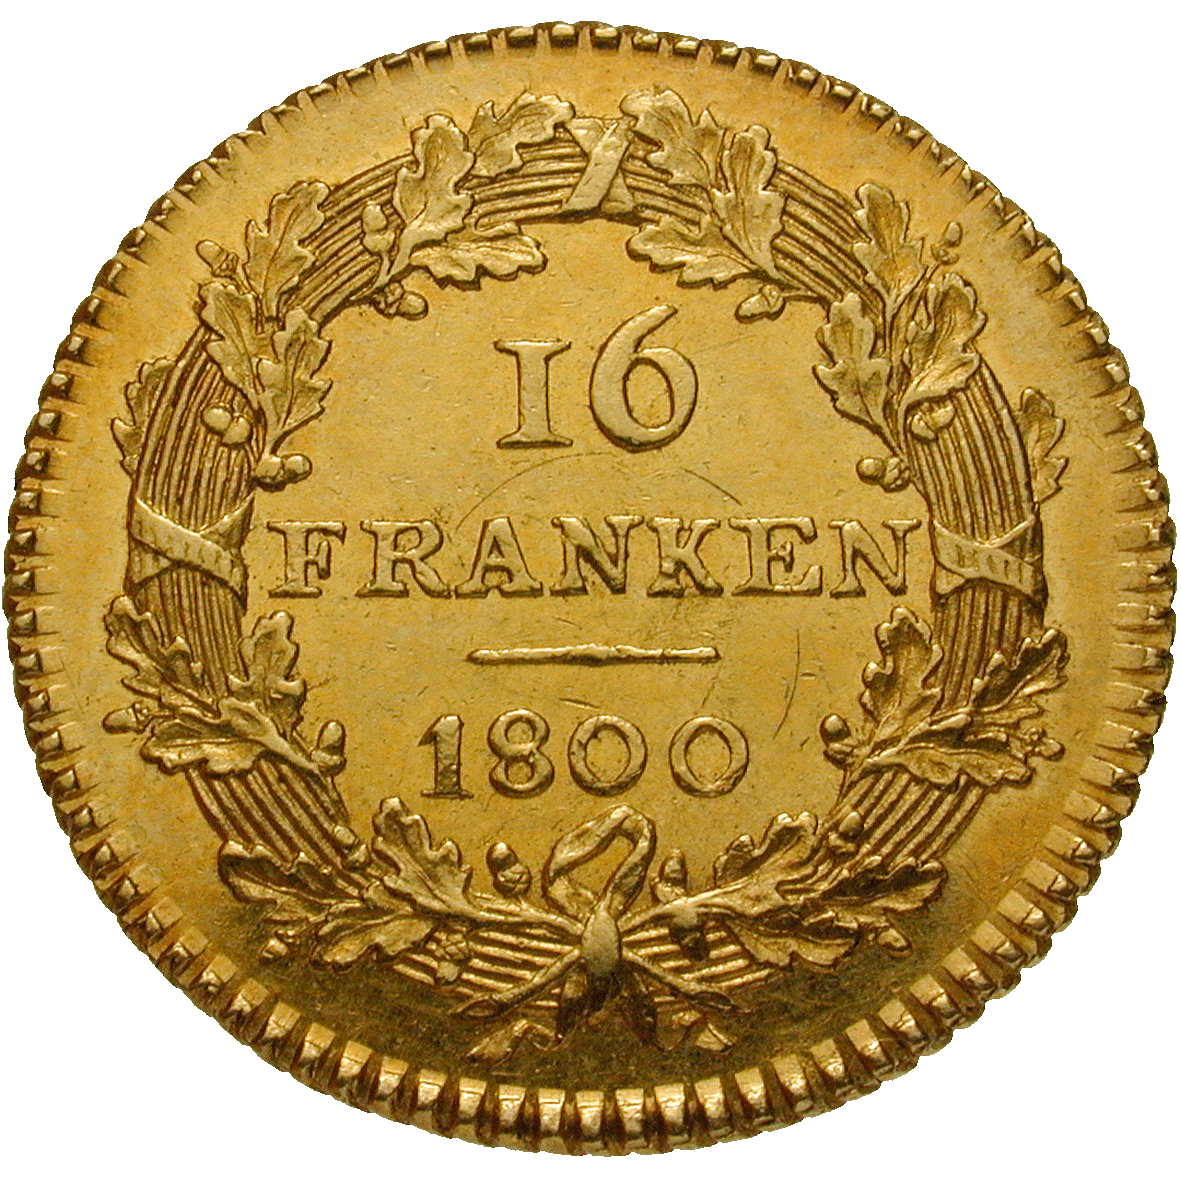 Helvetic Republic, 16 Francs 1800 (reverse)